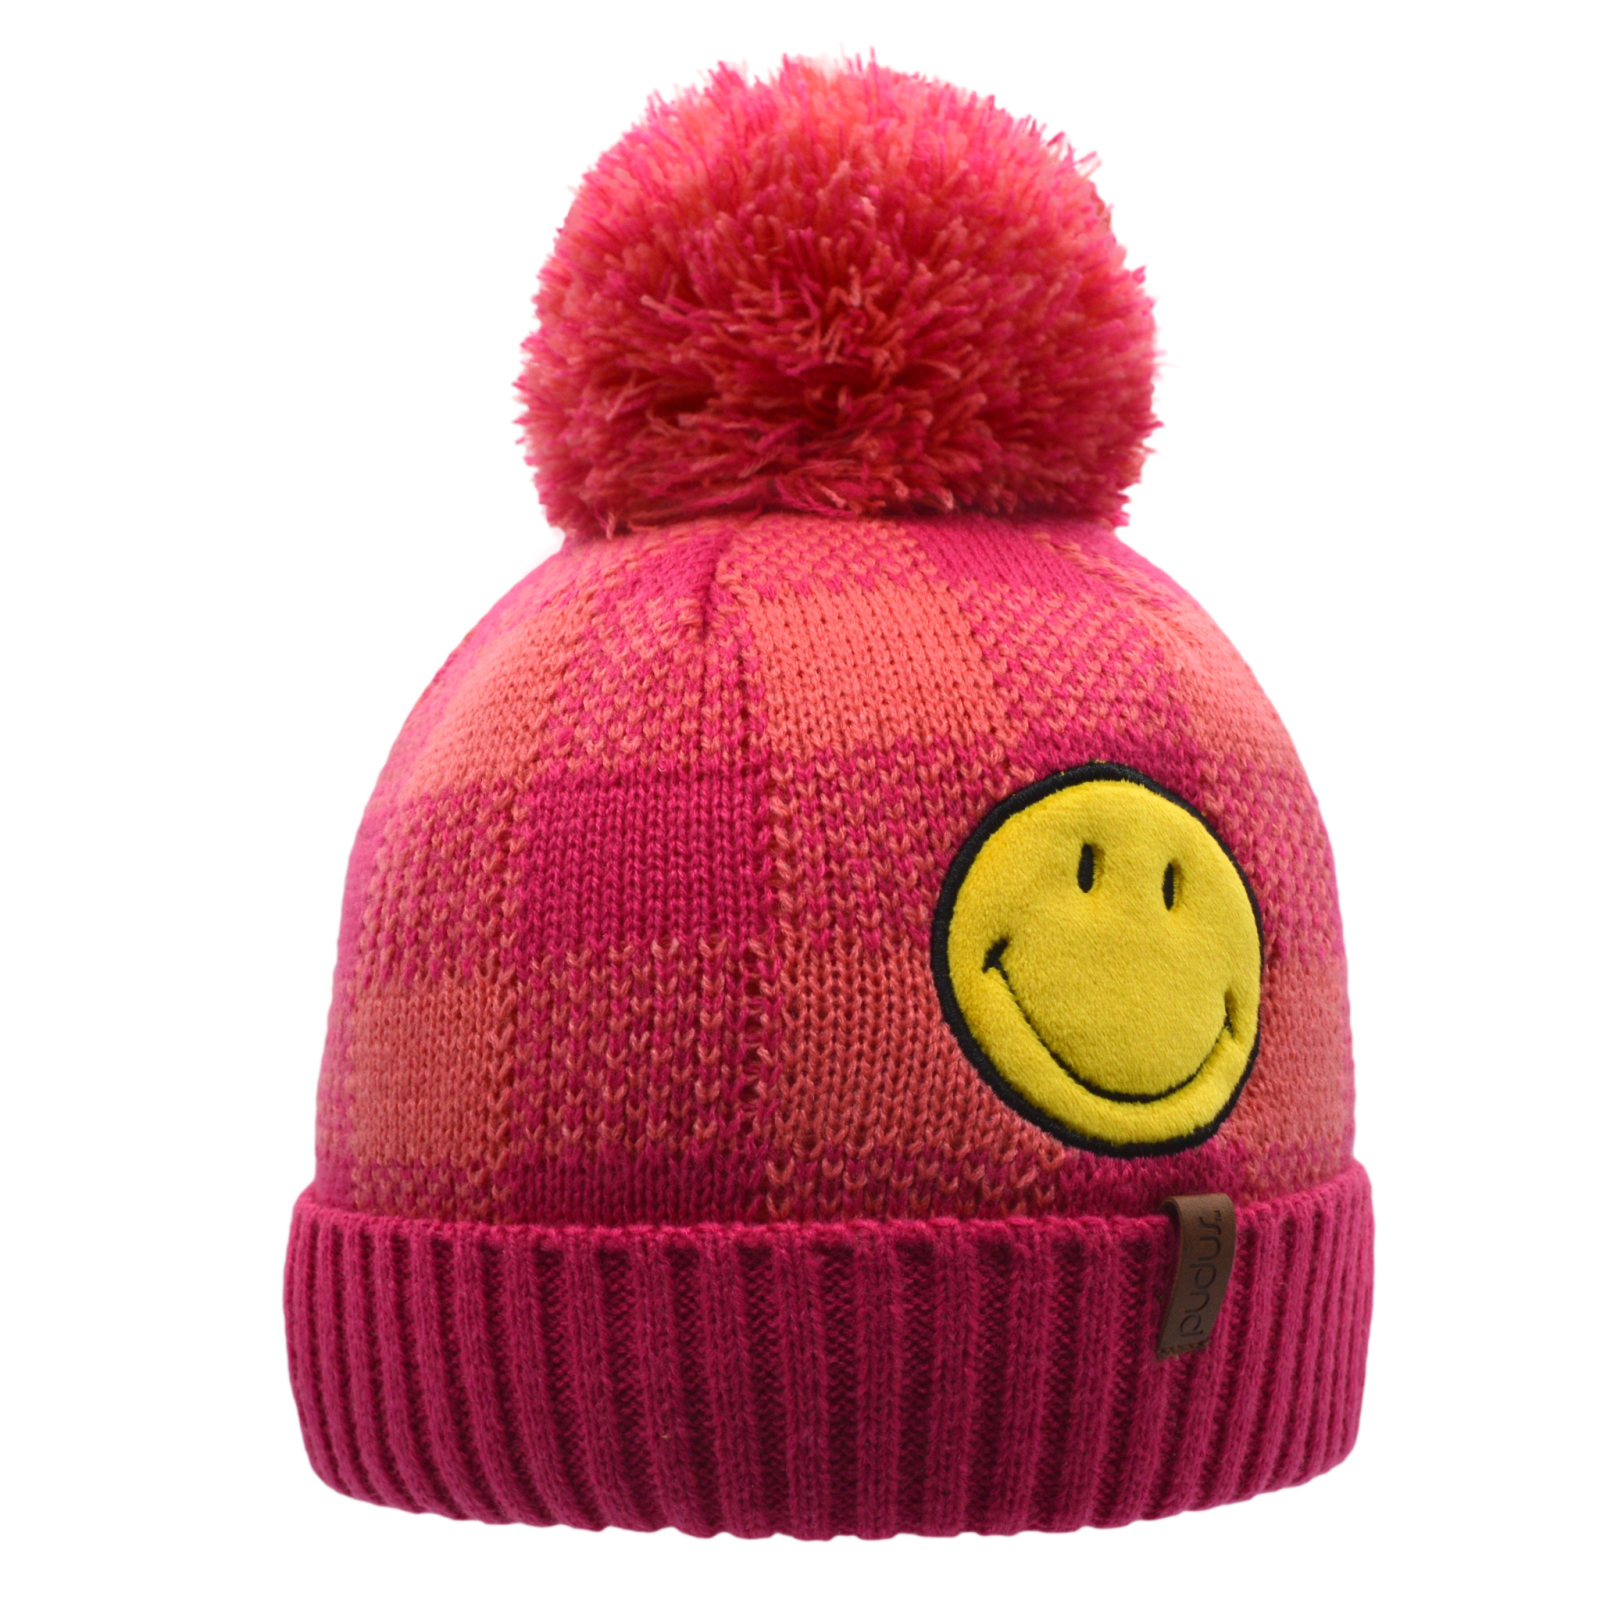 Smiley Beanie Hat | Pink Lumberjack